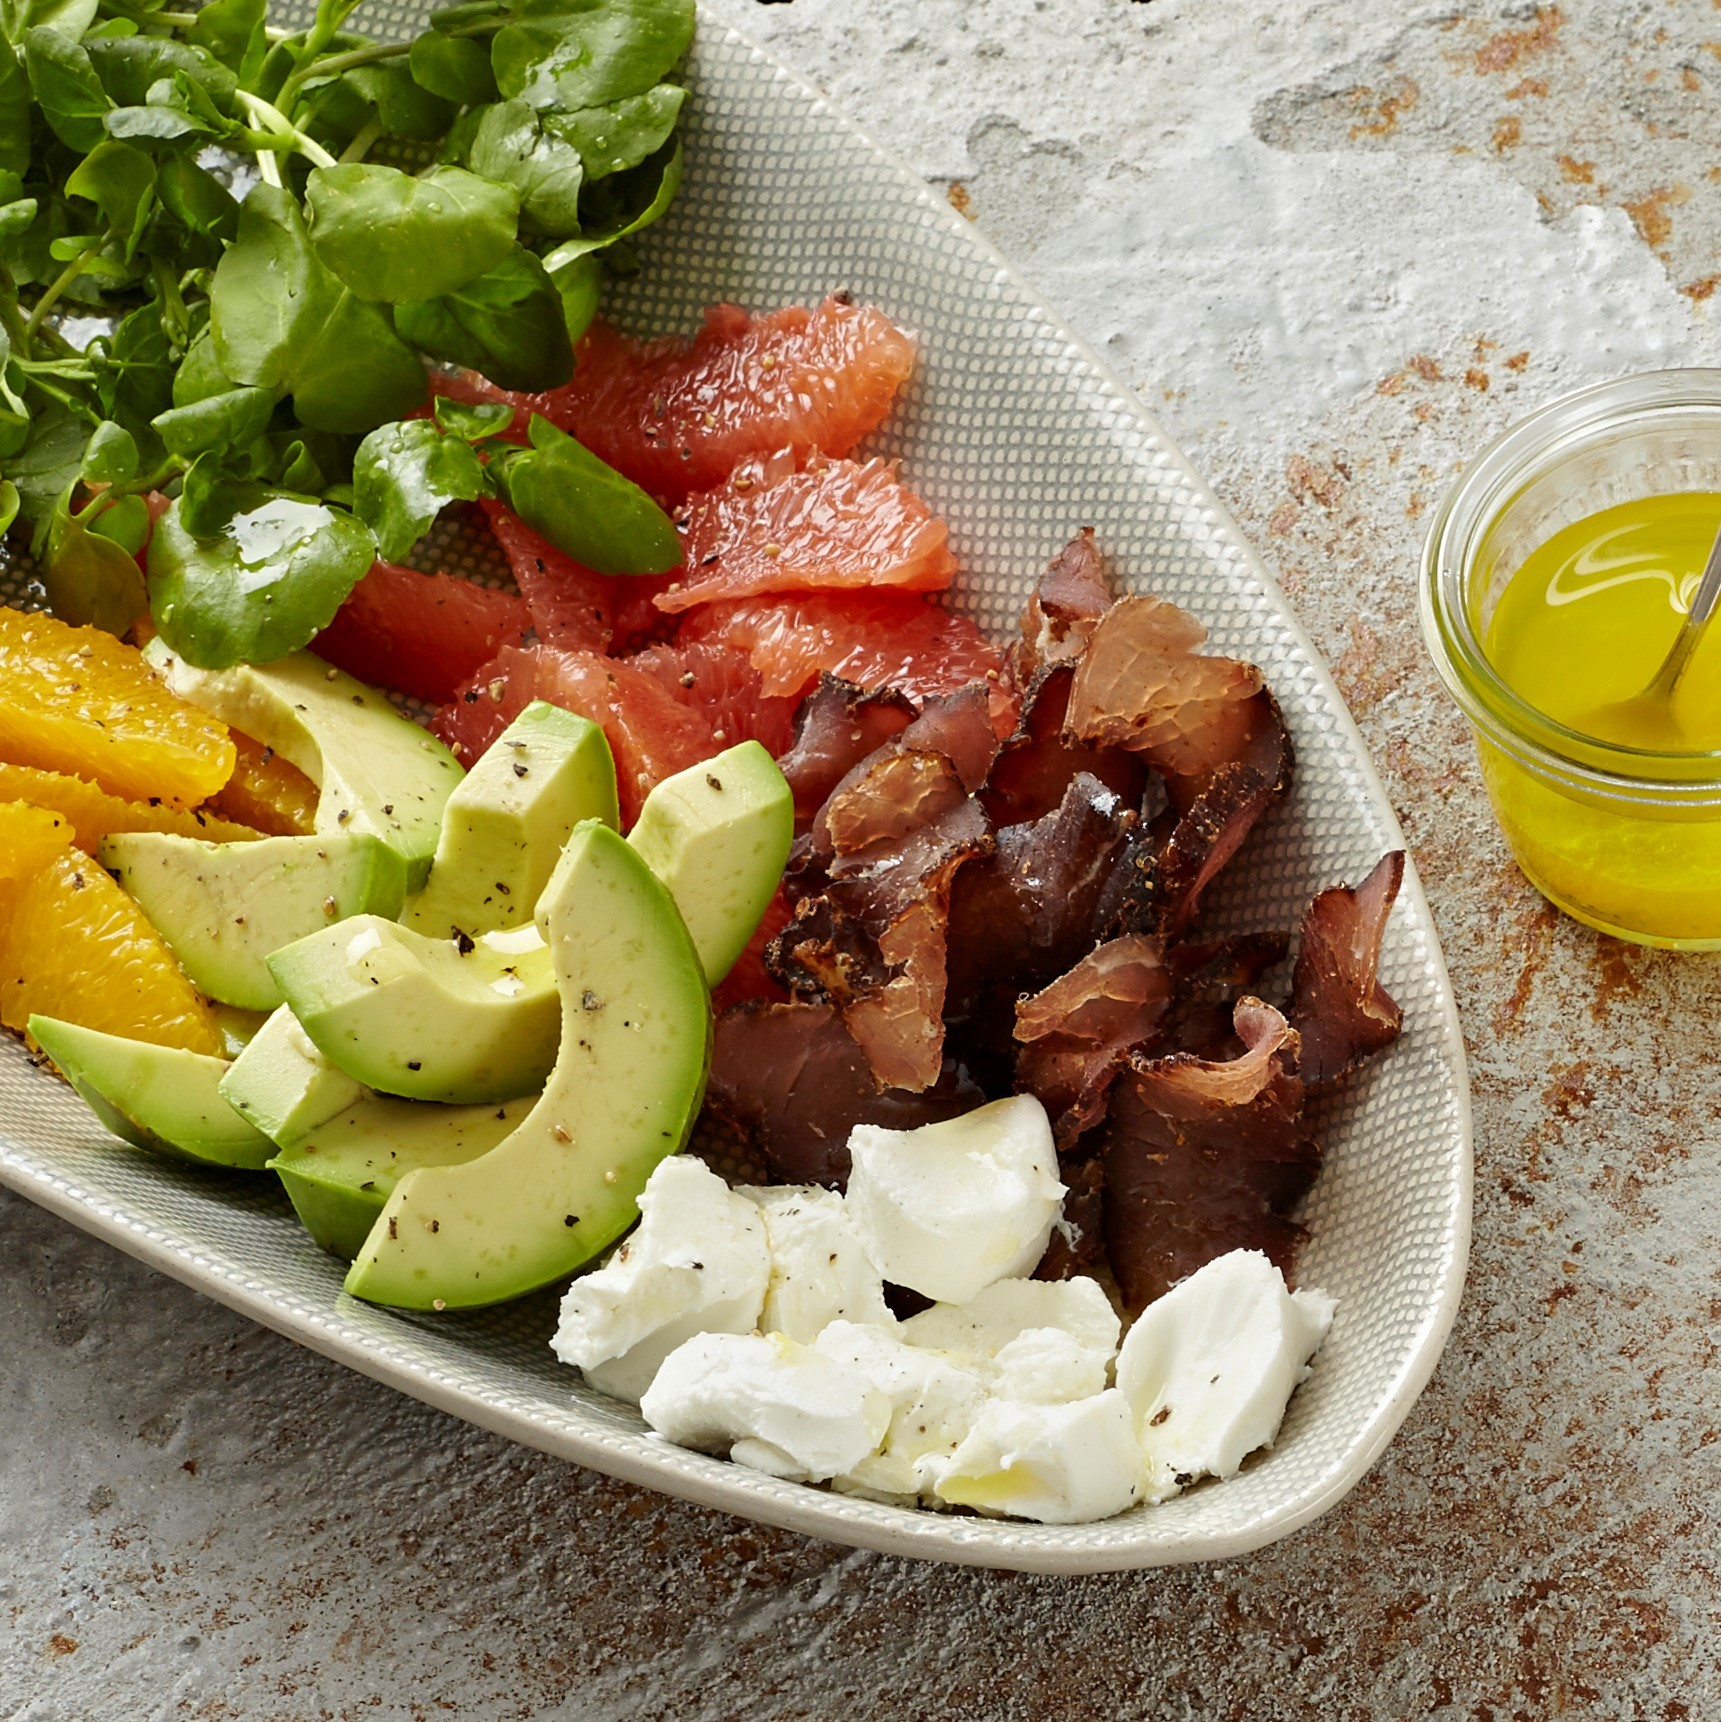 Avocado & citrus salad with biltong